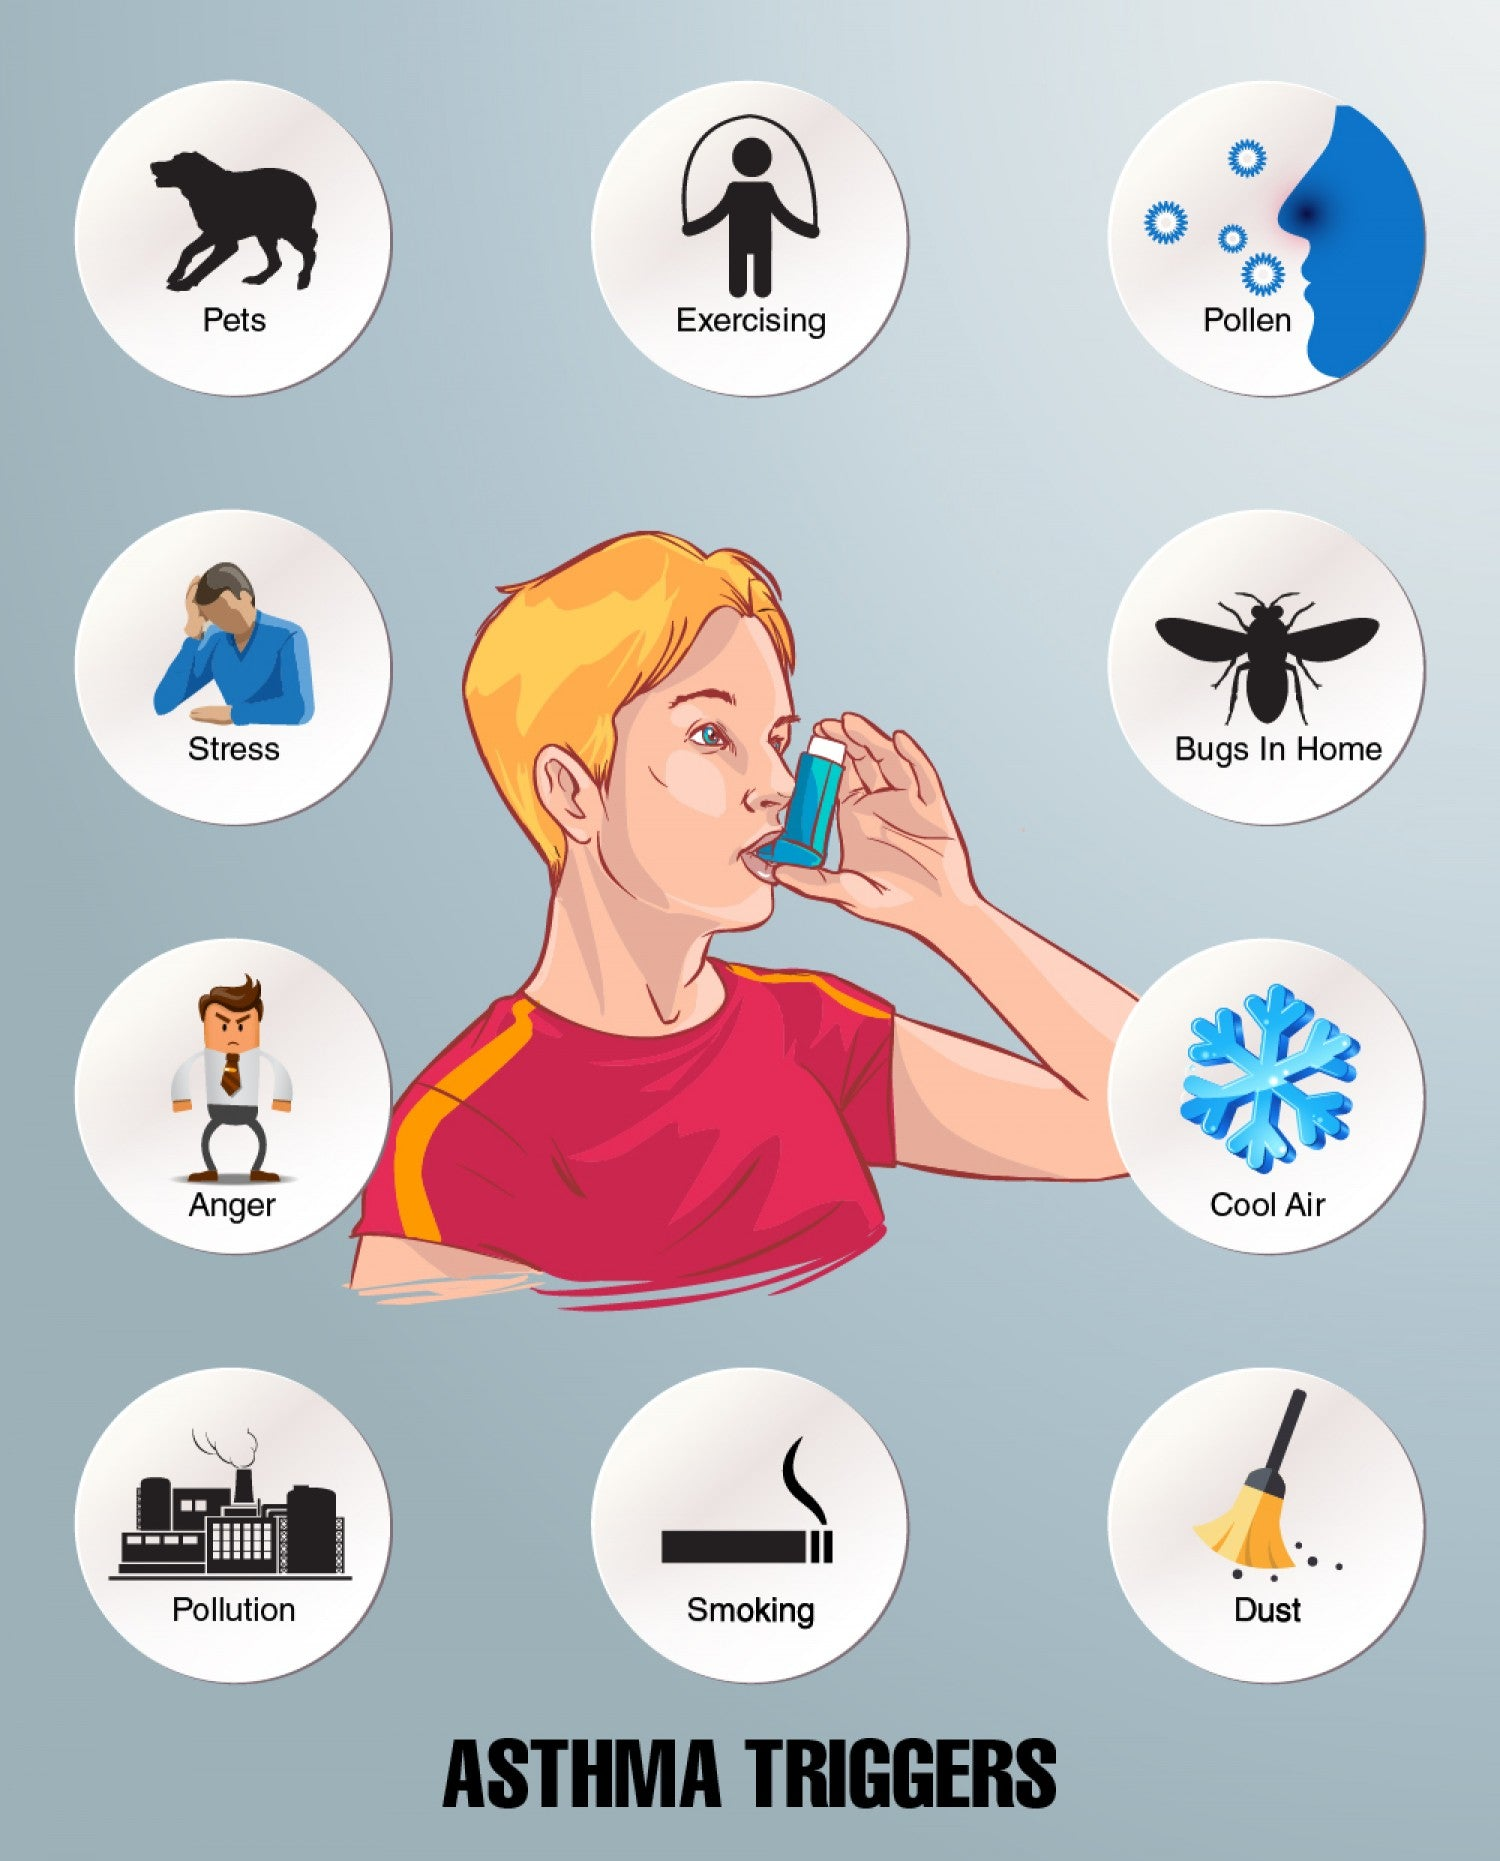 asthma triggers infographic